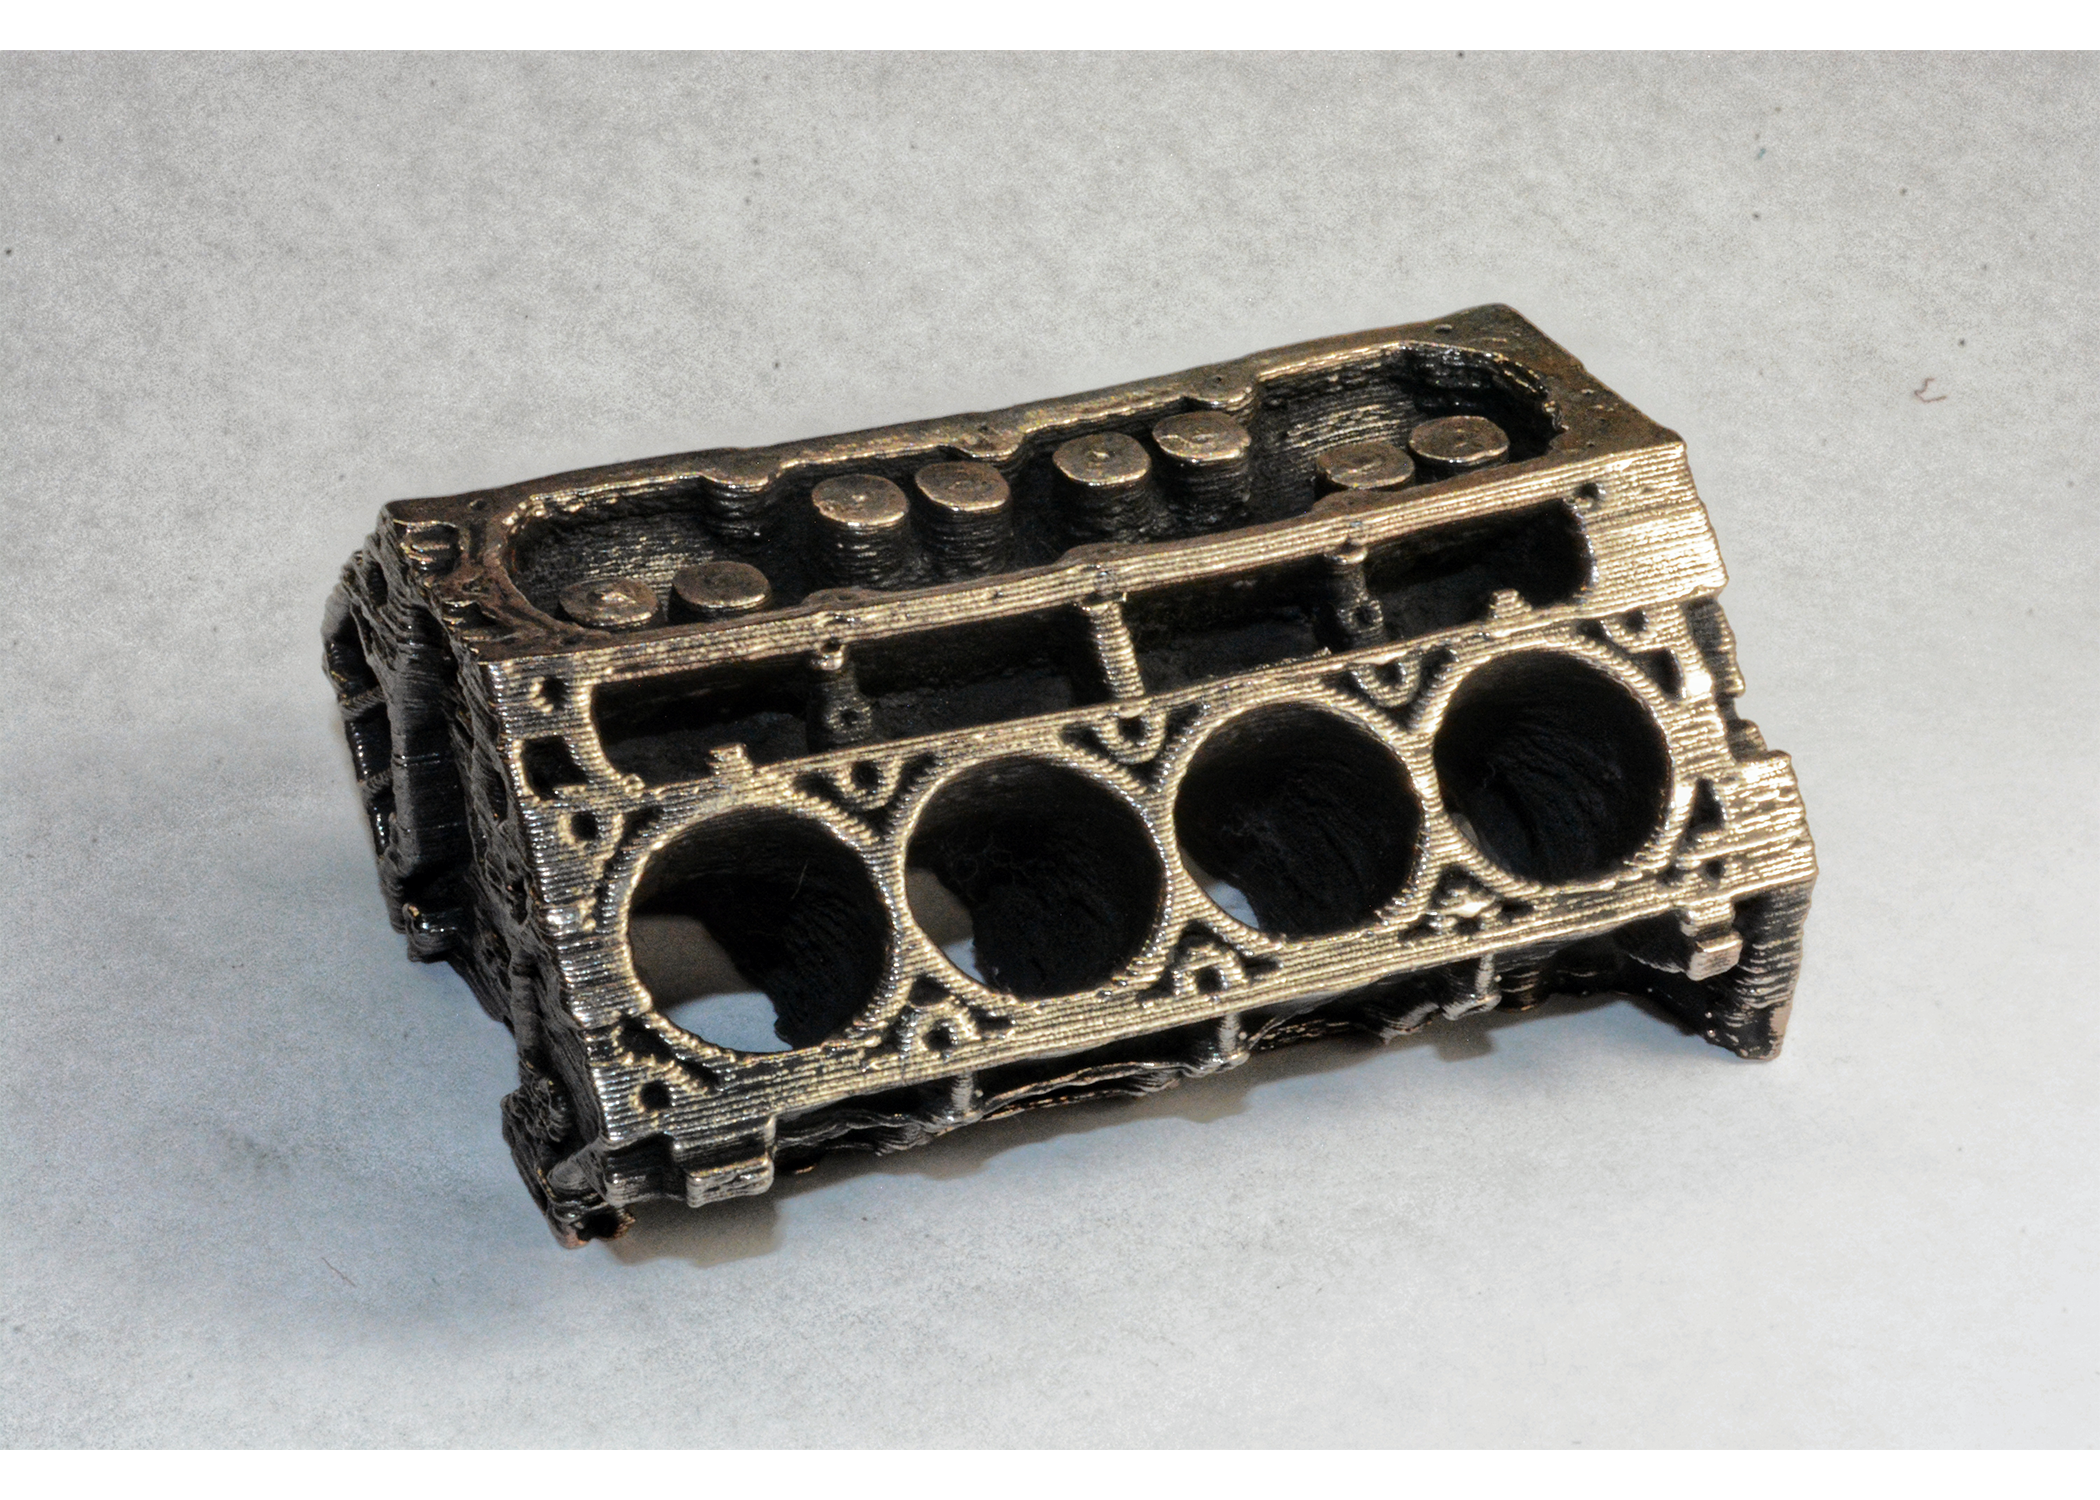 bronze 3d printed metal engine part printed on a desktop printer